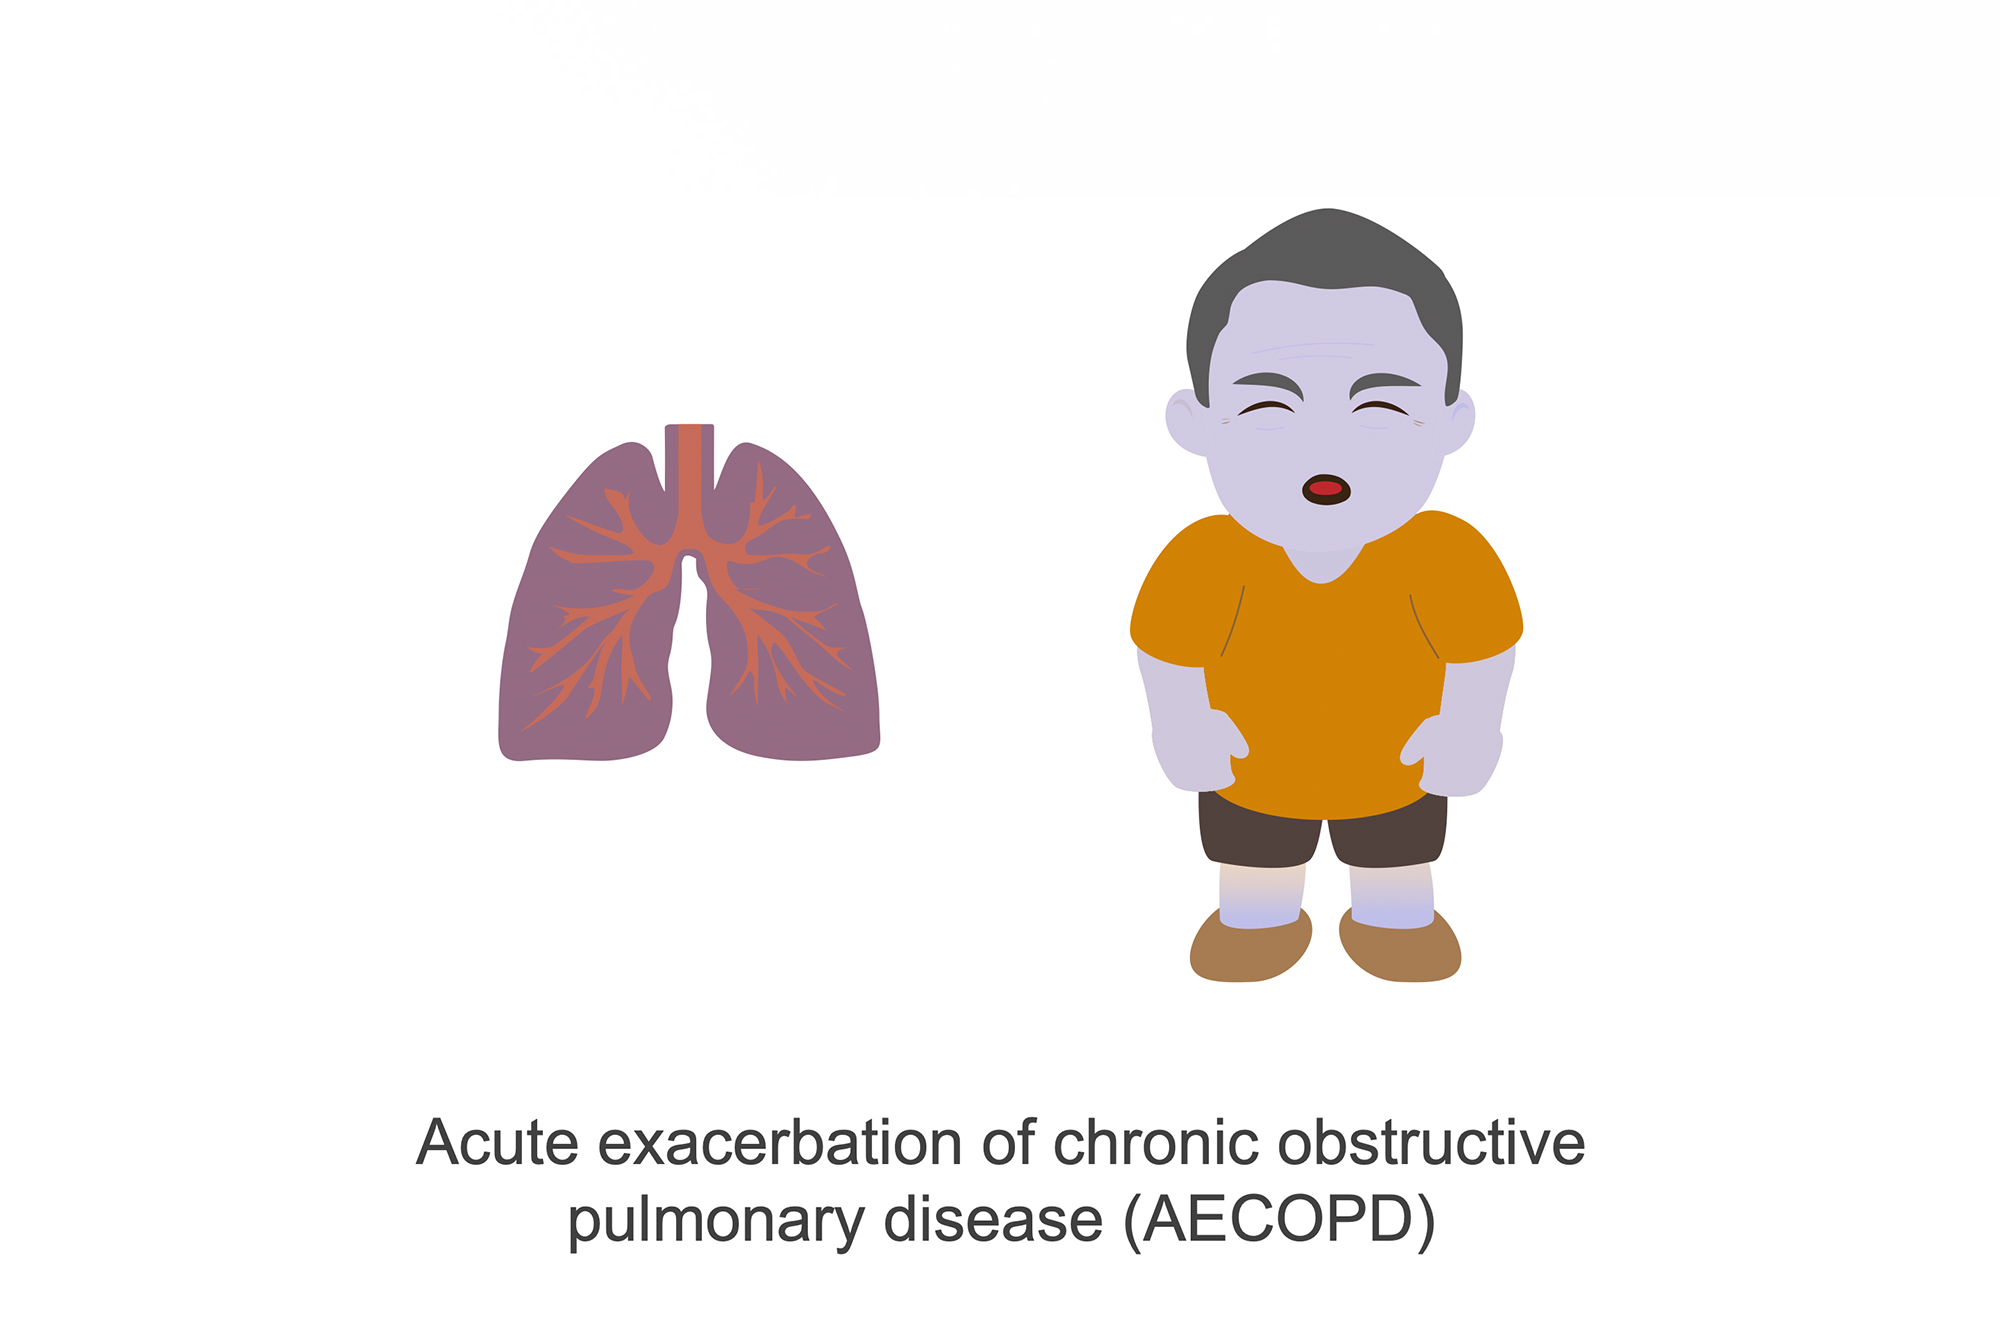 Man with blue skin as sign of acute exacerbations of chronic obstructive pulmonary disease (AECOPD). Cartoon.